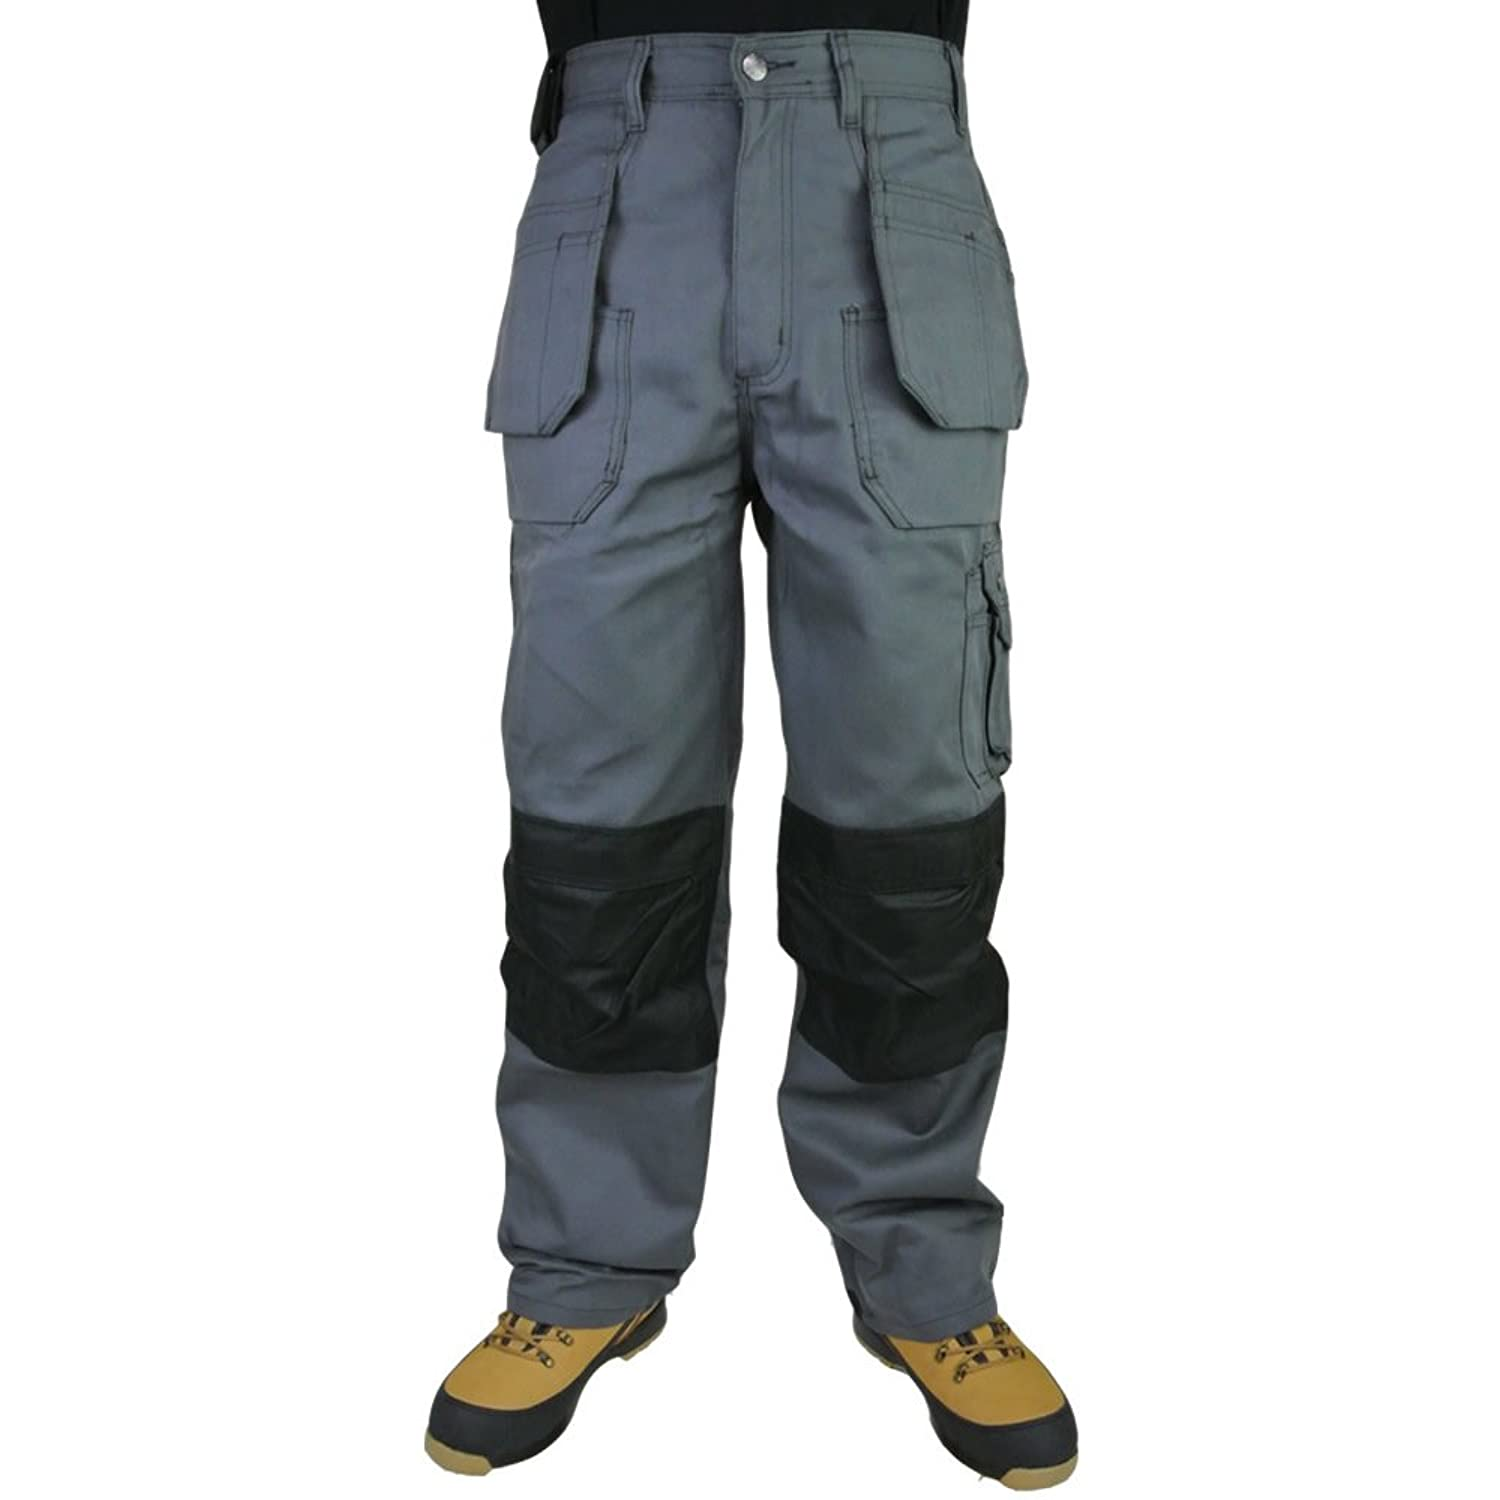 2 x Click Hexham Canvas Triple Stitched Tuff Pro Work Trouser Nail Pocket Combat